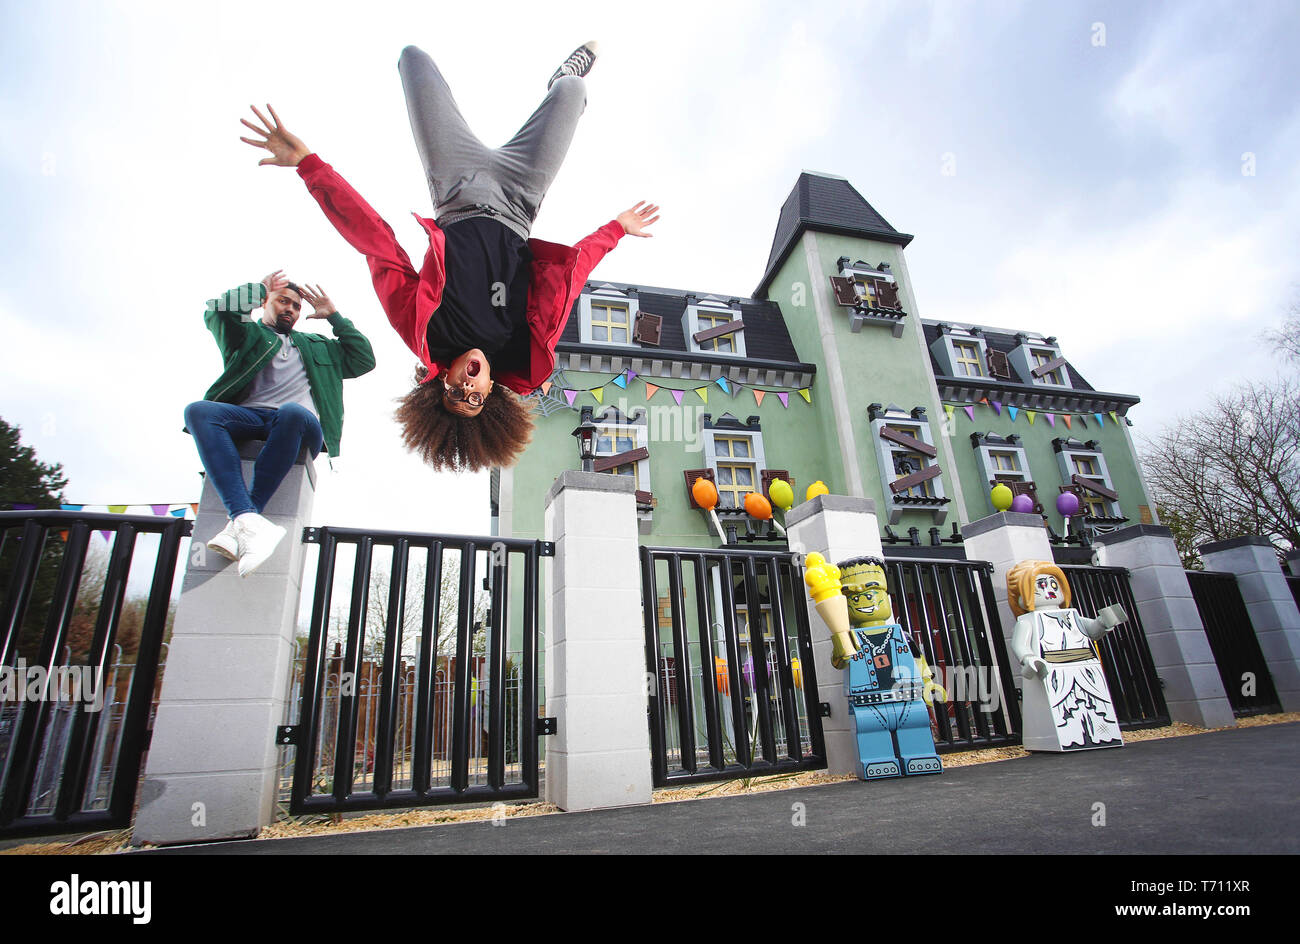 Hair-raising flips and tricks from dancing Diversity duo Jordan Banjo (26) and Perri Kiely (23). The pair were invited down to the LEGOLAND® Windsor Resort for a sneak peek of the new ride – The Haunted House Monster Party – ahead of its grand opening on 13 April 2019.  Whilst at LEGOLAND, the boys – who are no strangers to spending time flipped upside down as part of their impressive dance careers – showed off their gravity-defying skills and signature party tricks around the Resort as it prepares for the ride's opening. They were spotted performing flips outside the front of the Haunted Hous - Stock Image